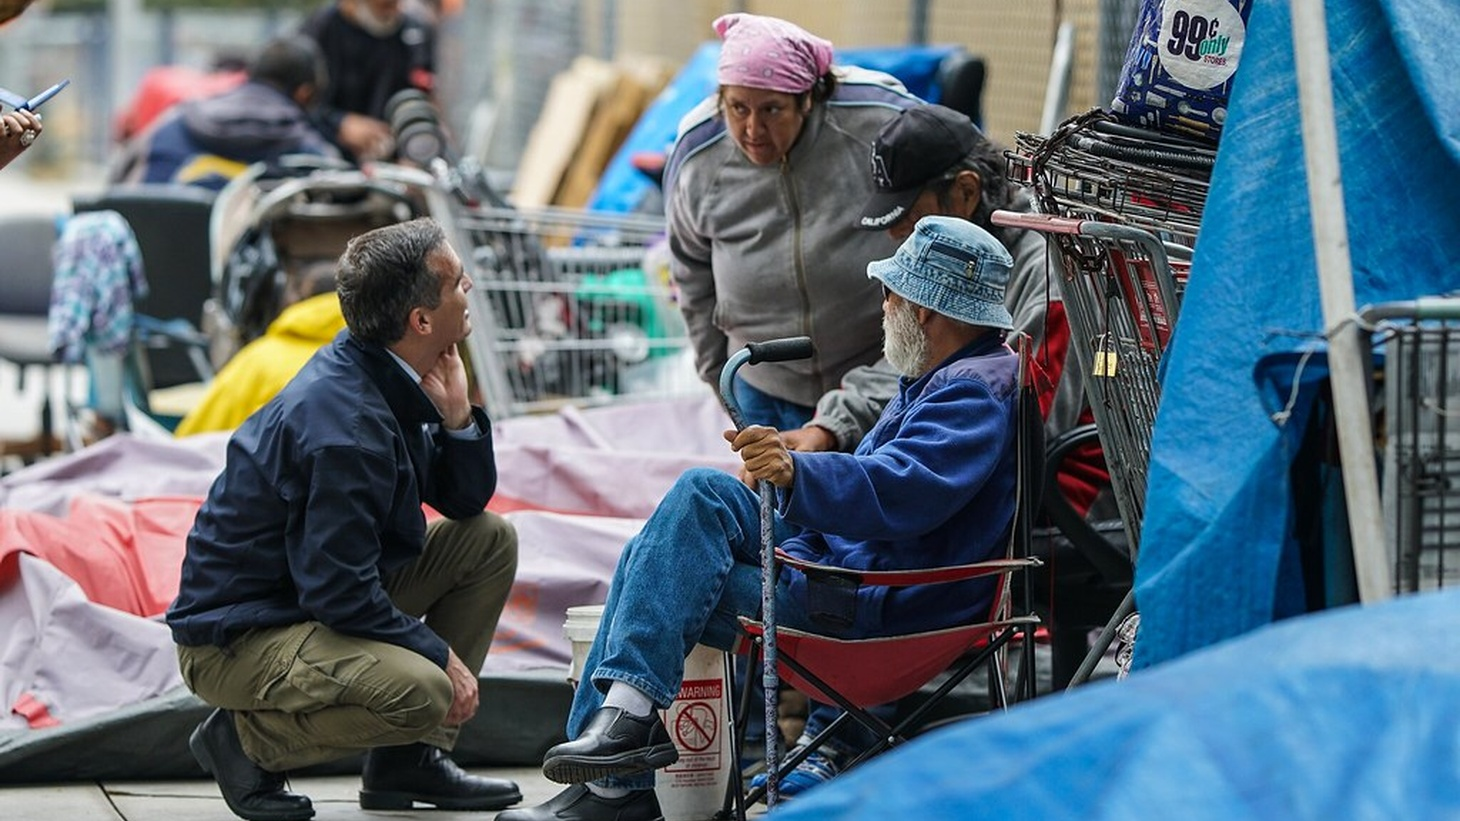 Mayor Garcetti meets with Angelenos experiencing homelessness and outreach workers